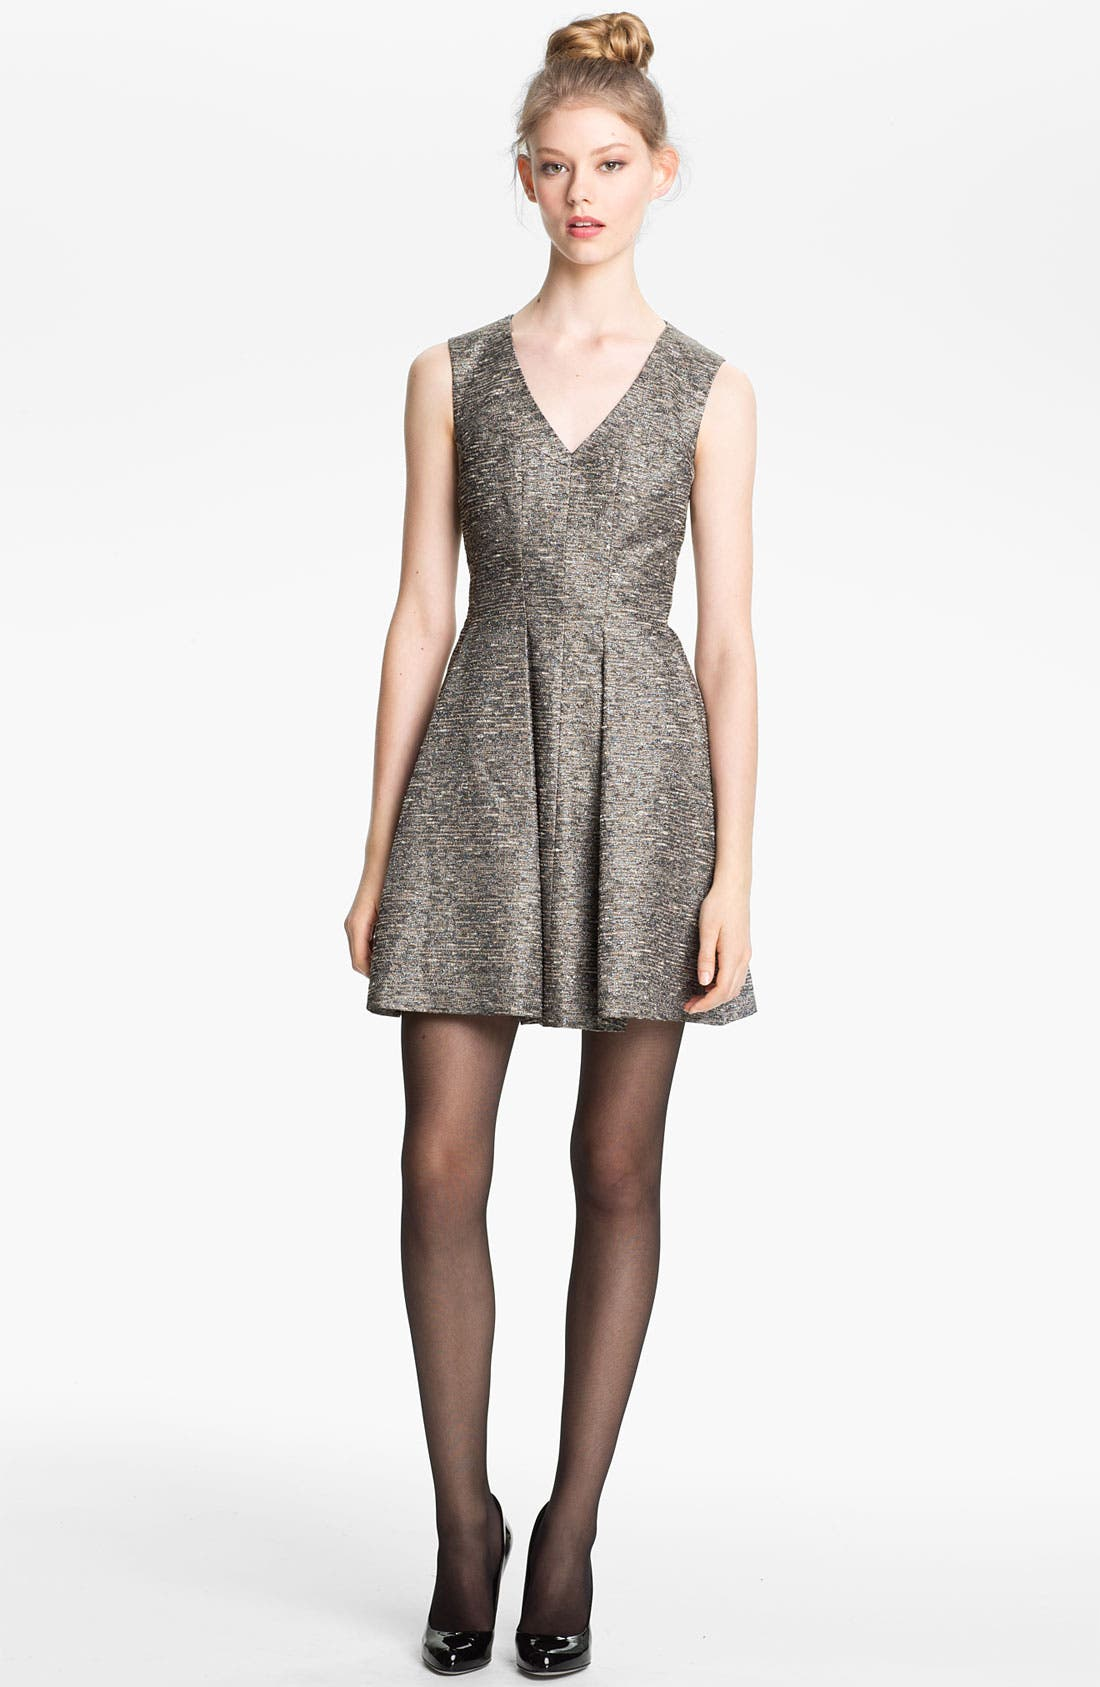 Main Image - Mcginn 'Chloe' Textured Metallic Dress